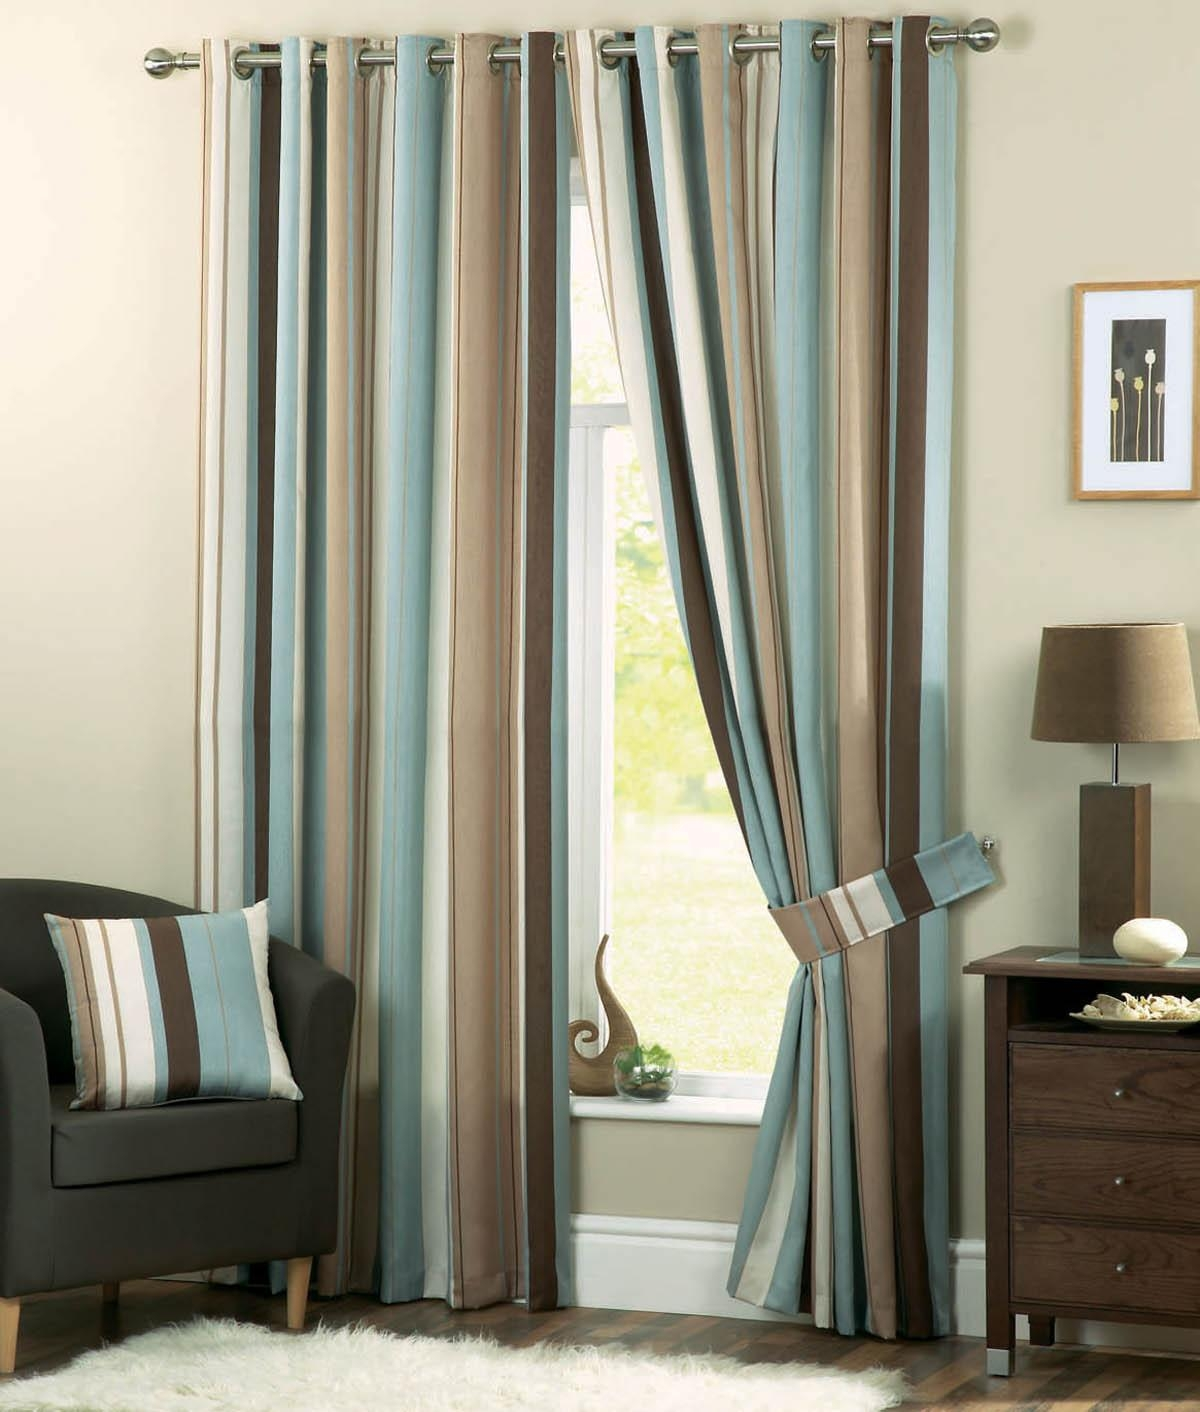 Whitworth Eyelet Curtains Duckegg Free Uk Delivery Terrys Fabrics Within Duck Egg Blue Striped Curtains (View 3 of 15)